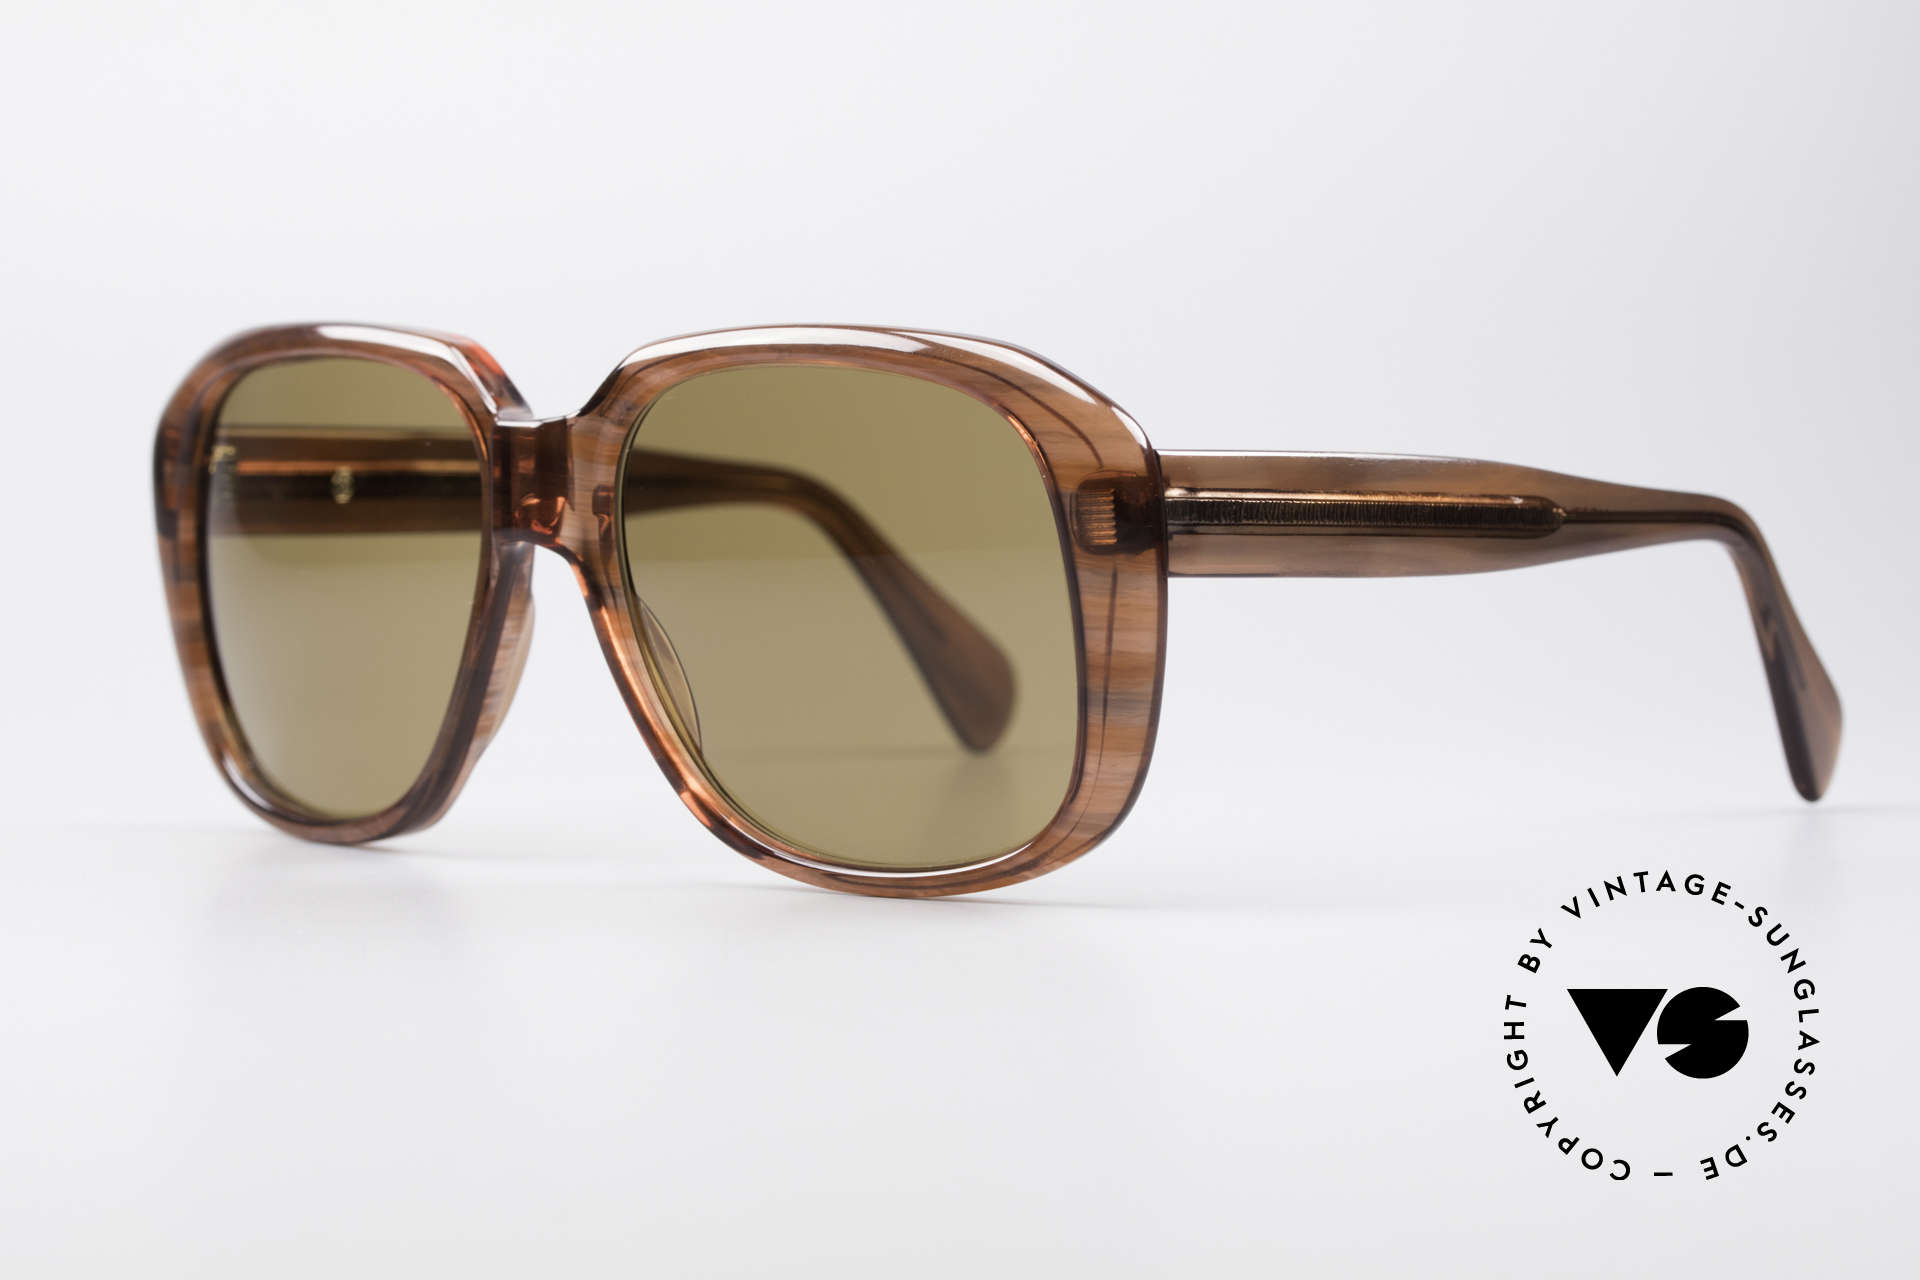 Metzler 2070 Old School 70's Shades, with ZEISS UMBRAL mineral lenses (scratch-resistant), Made for Men